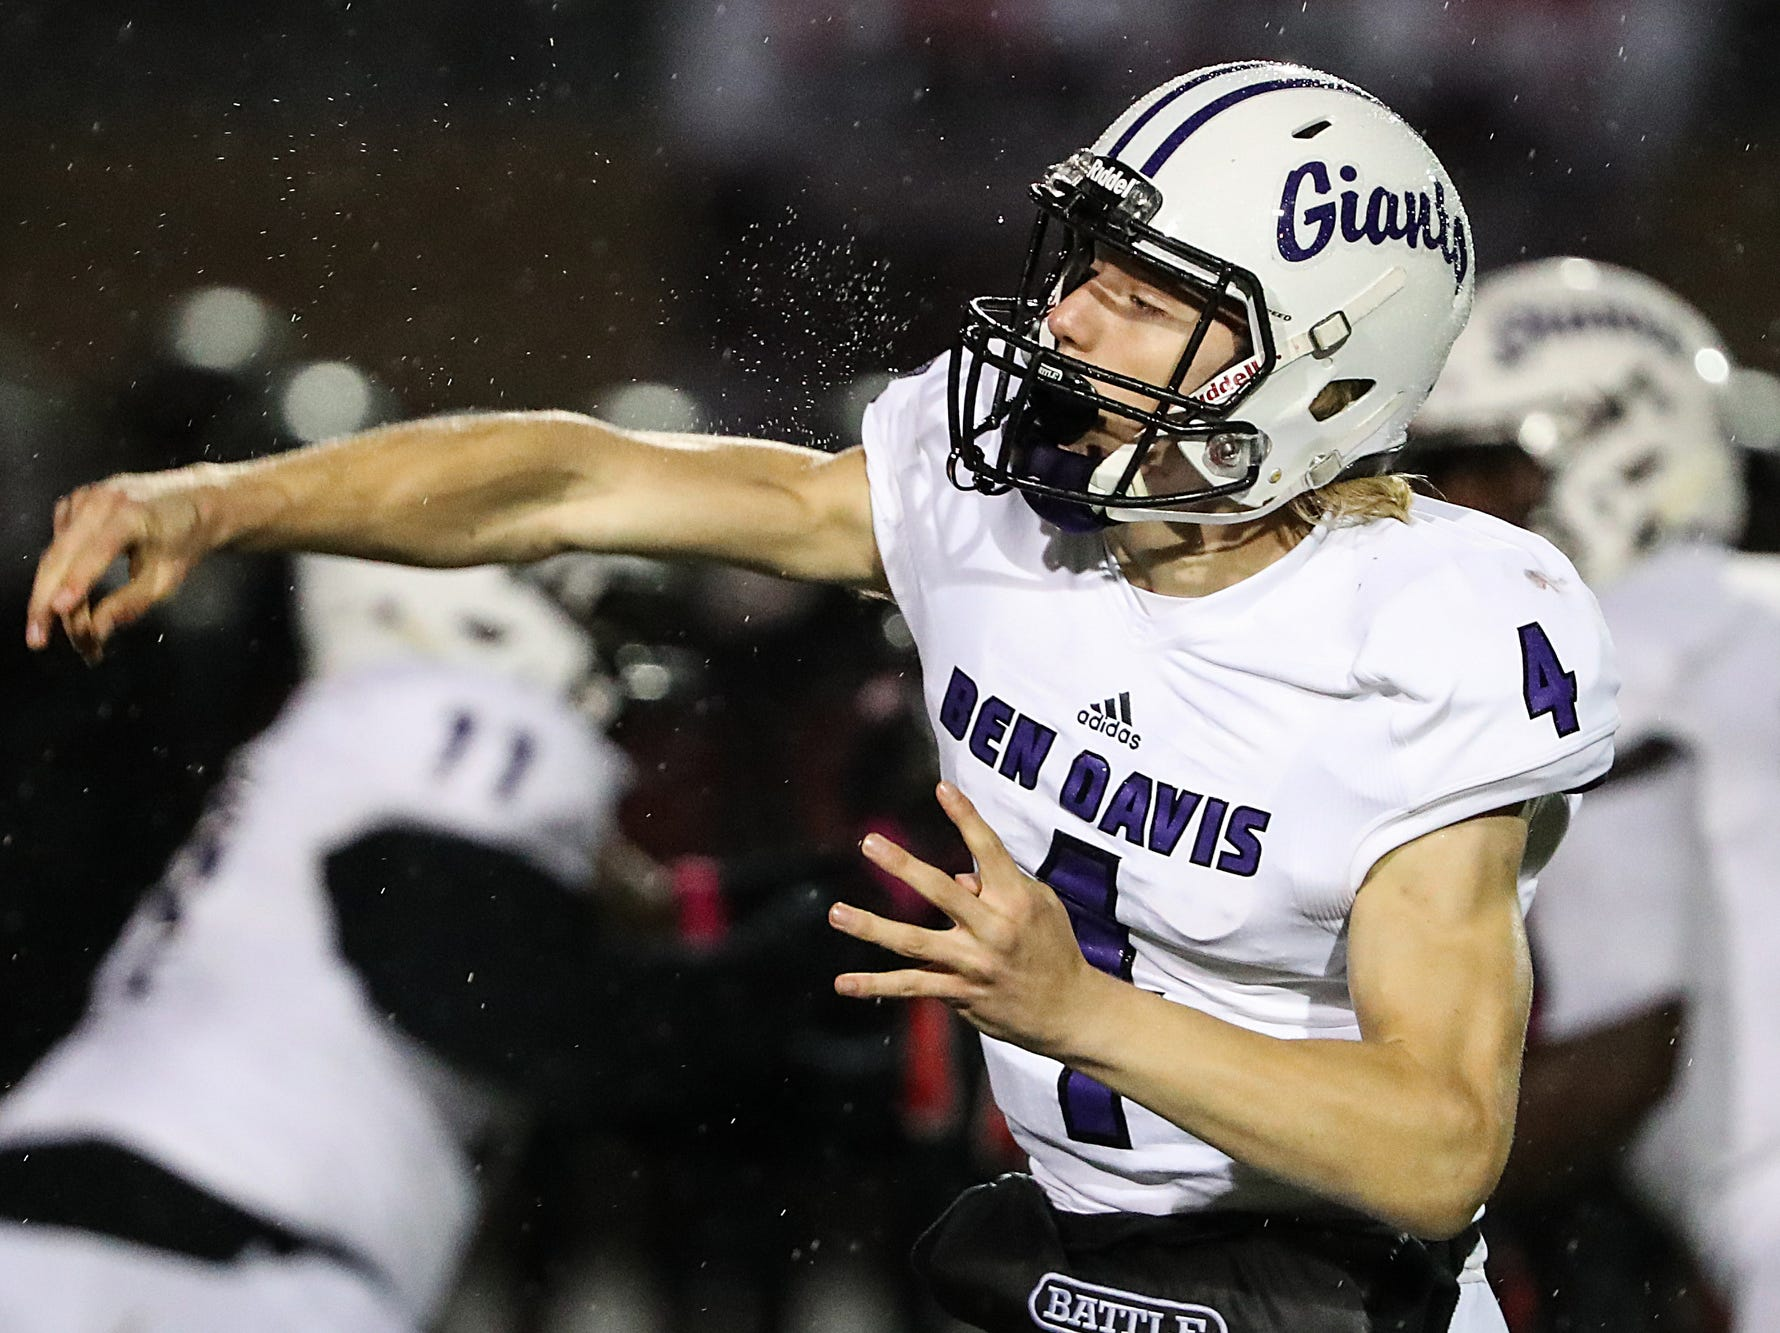 Ben Davis Giants quarterback Trent Gipson (4) passes in the first half of the game at North Central High School in Indianapolis, Oct. 12, 2018.